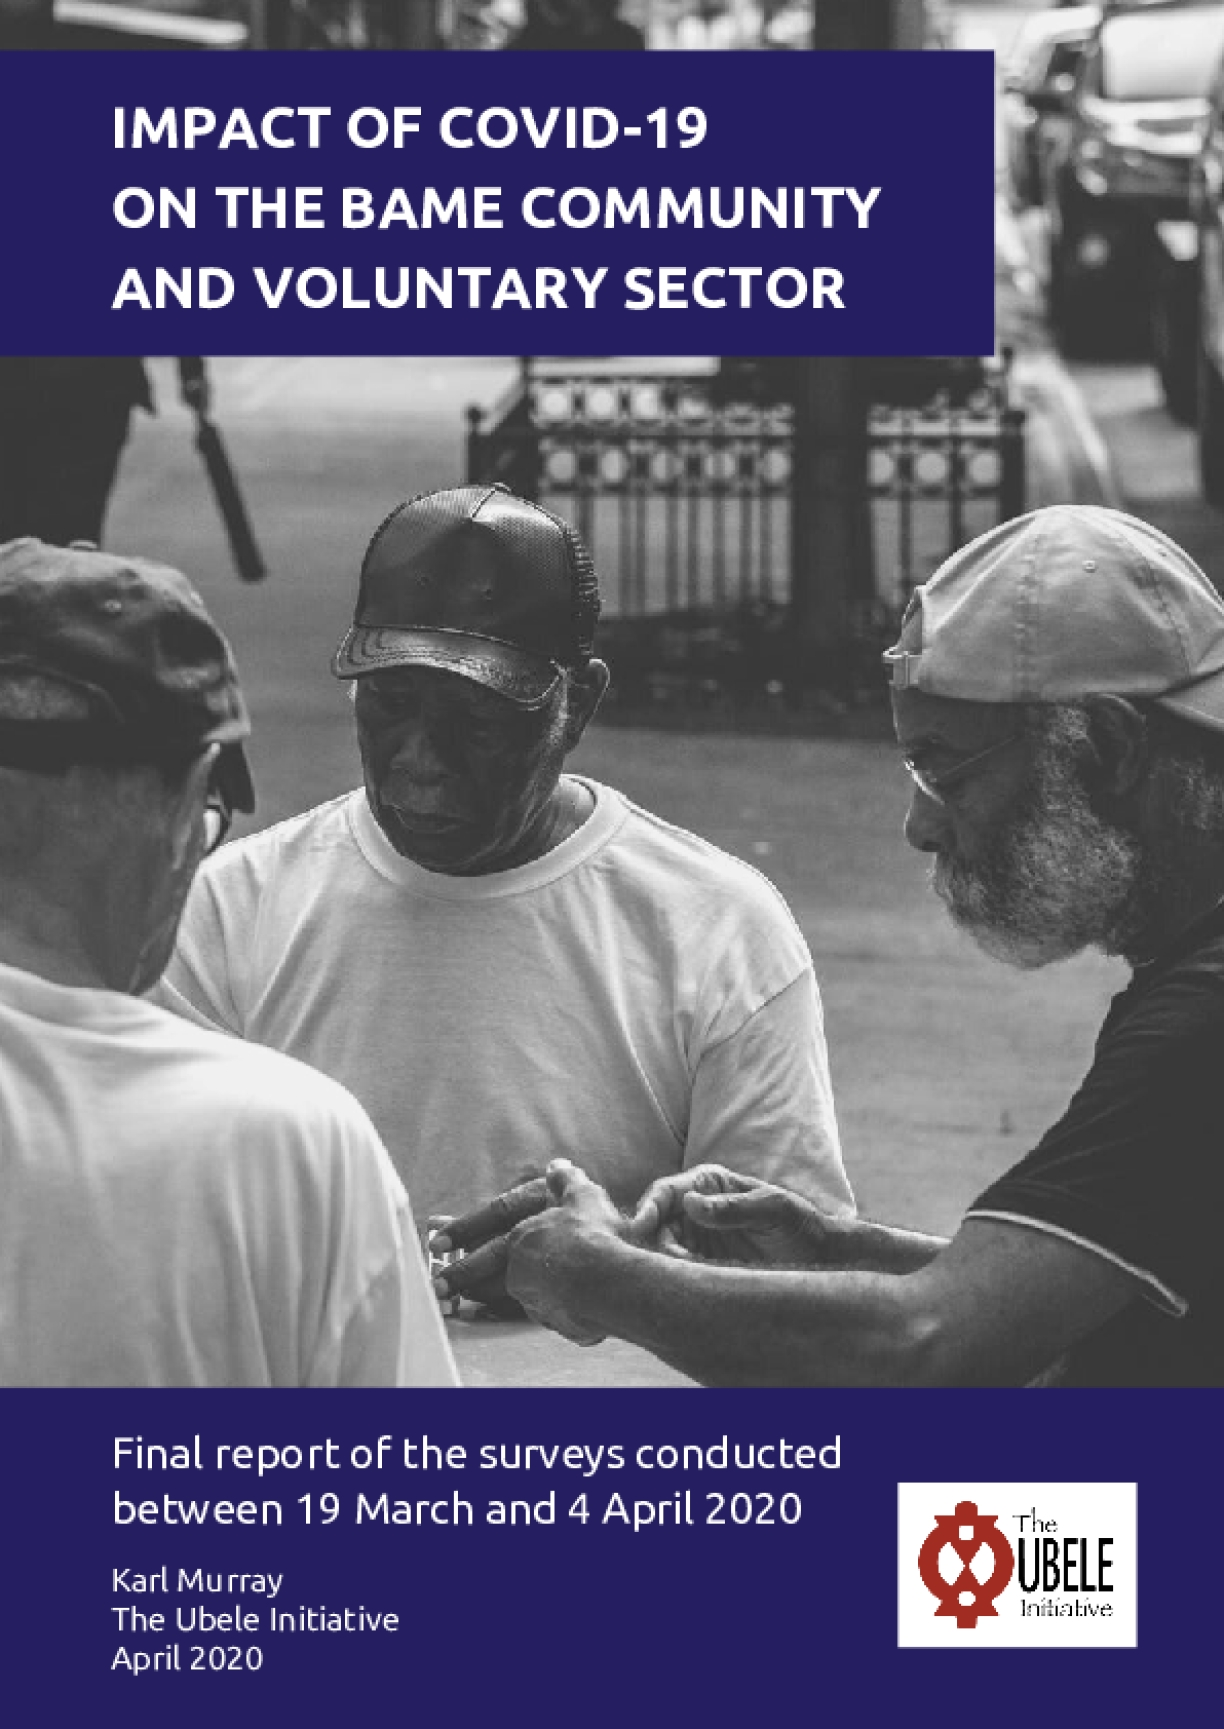 Impact of COVID-19 on the BAME community and voluntary sector: Final report of the research conducted between 19 March and 4 April 2020